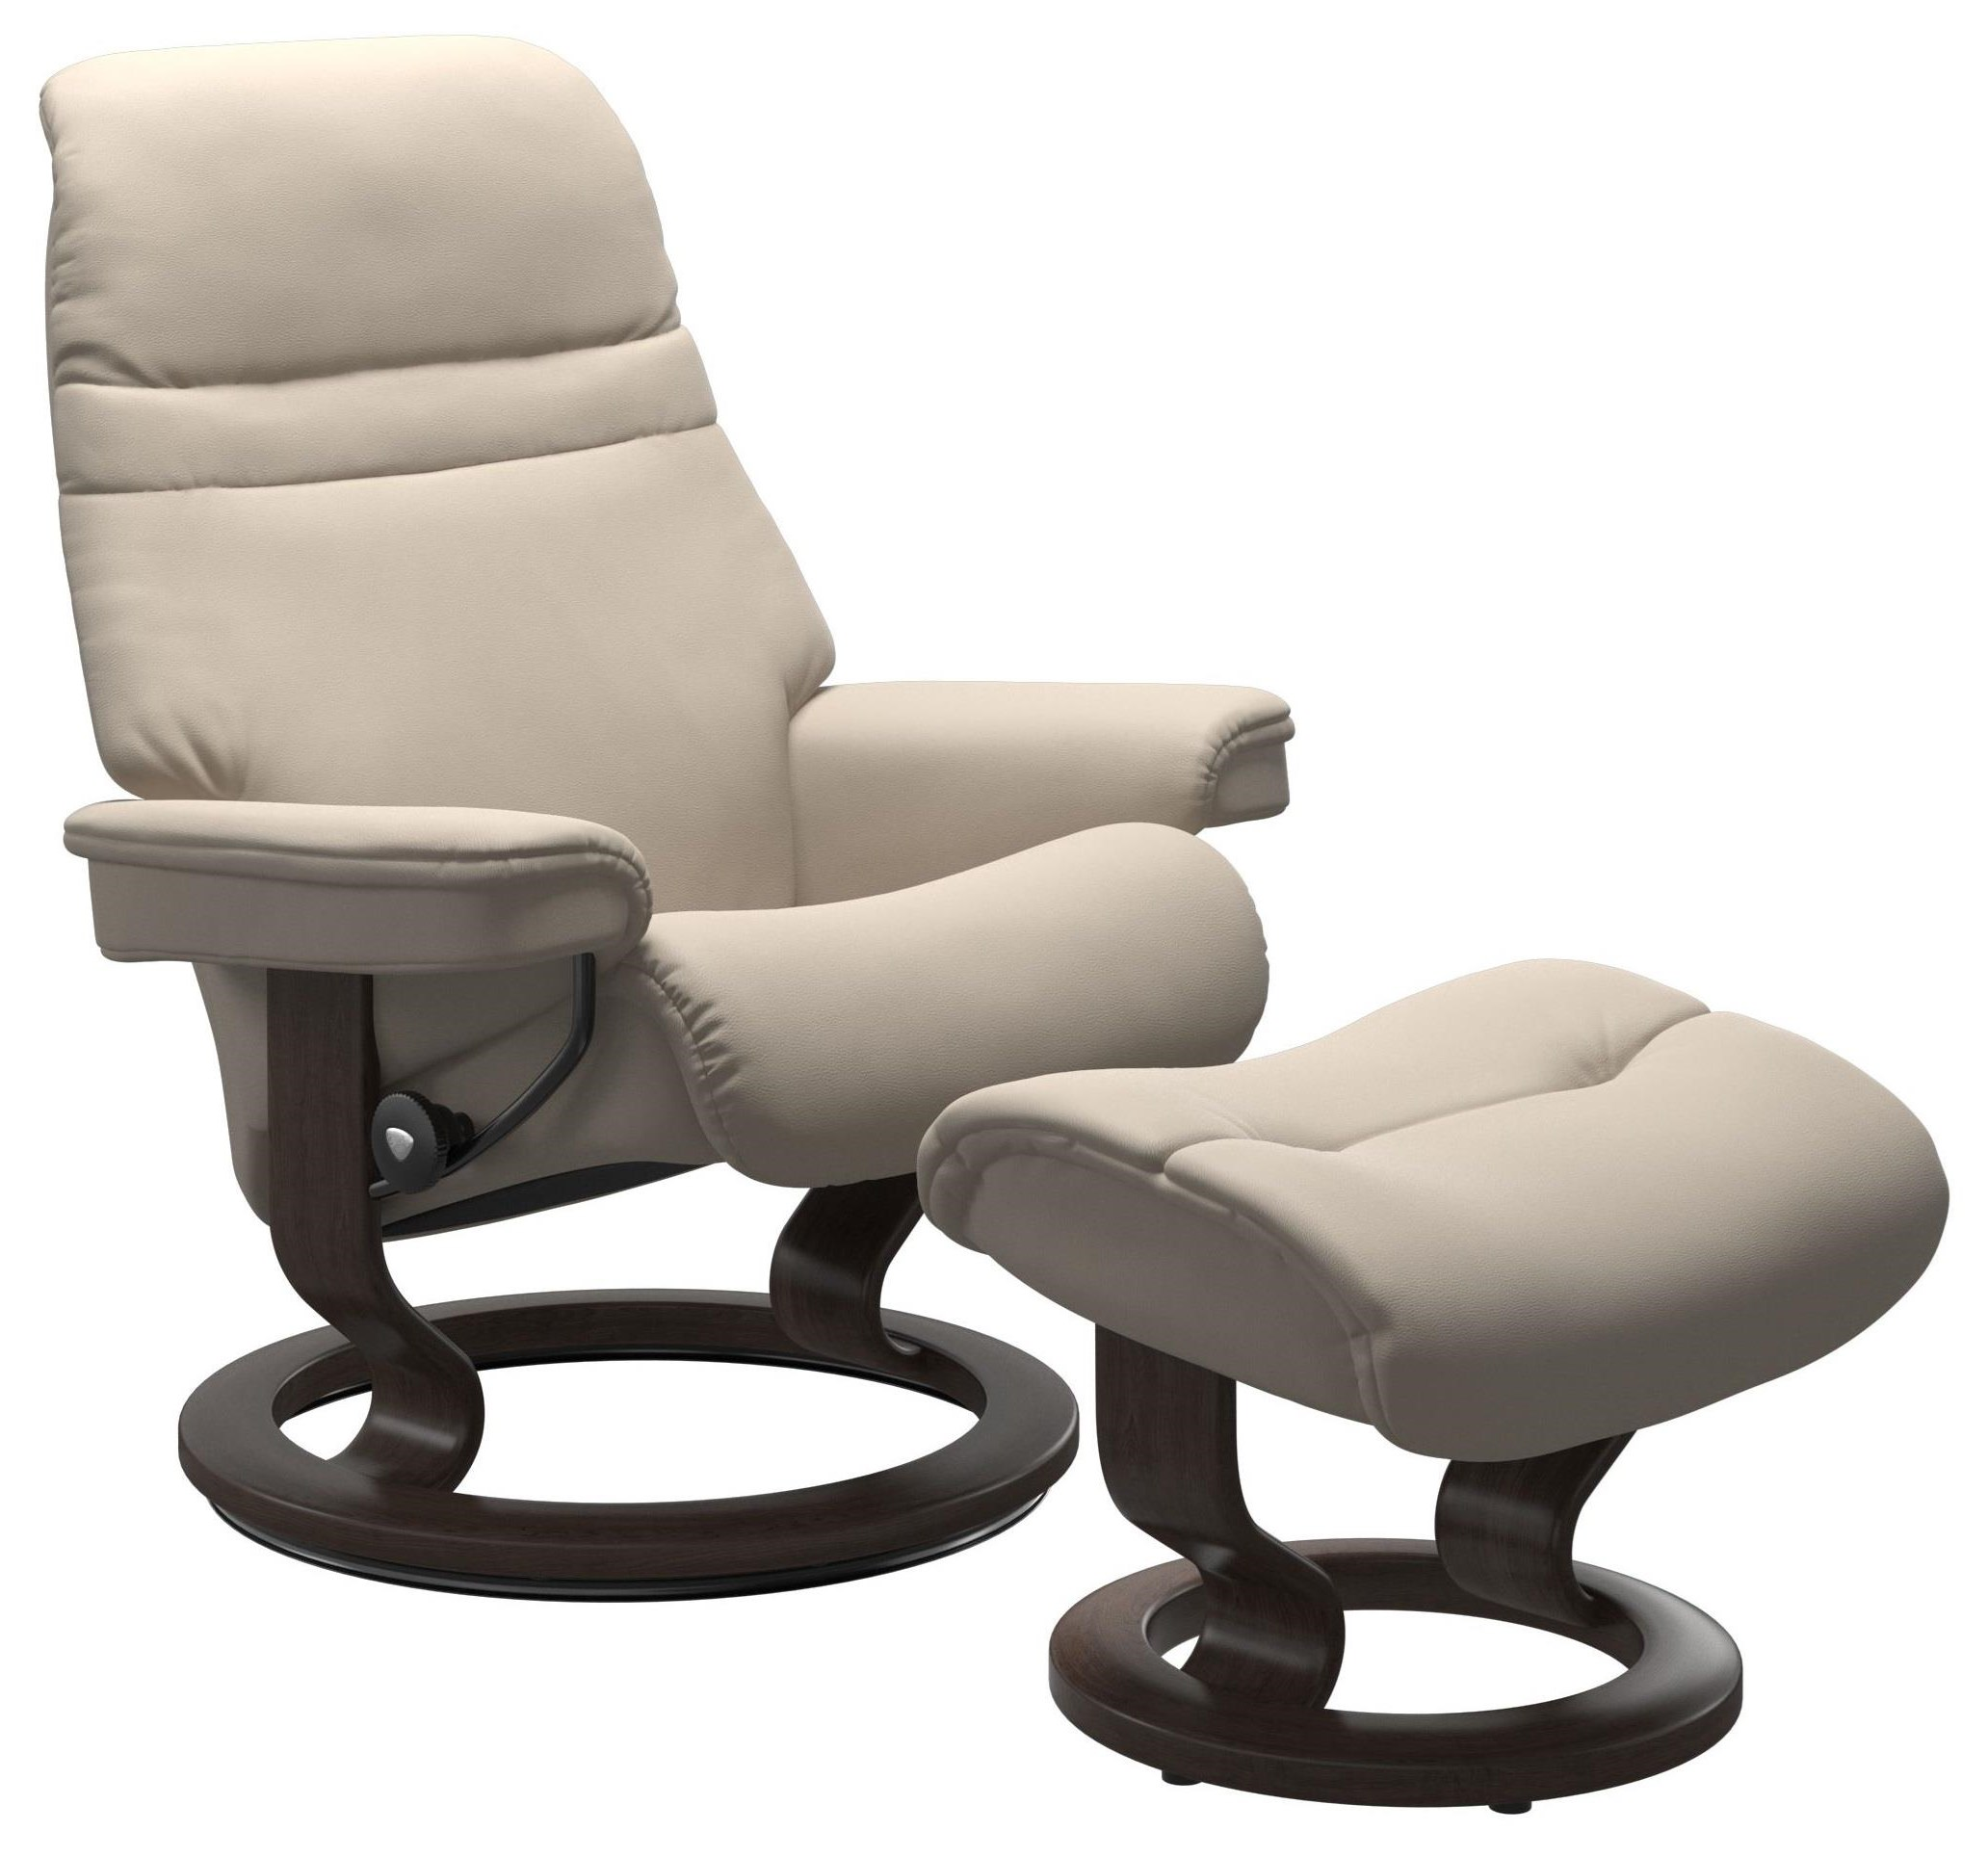 Sunrise Large Chair & Ottoman with Classic Base by Stressless at Bennett's Furniture and Mattresses